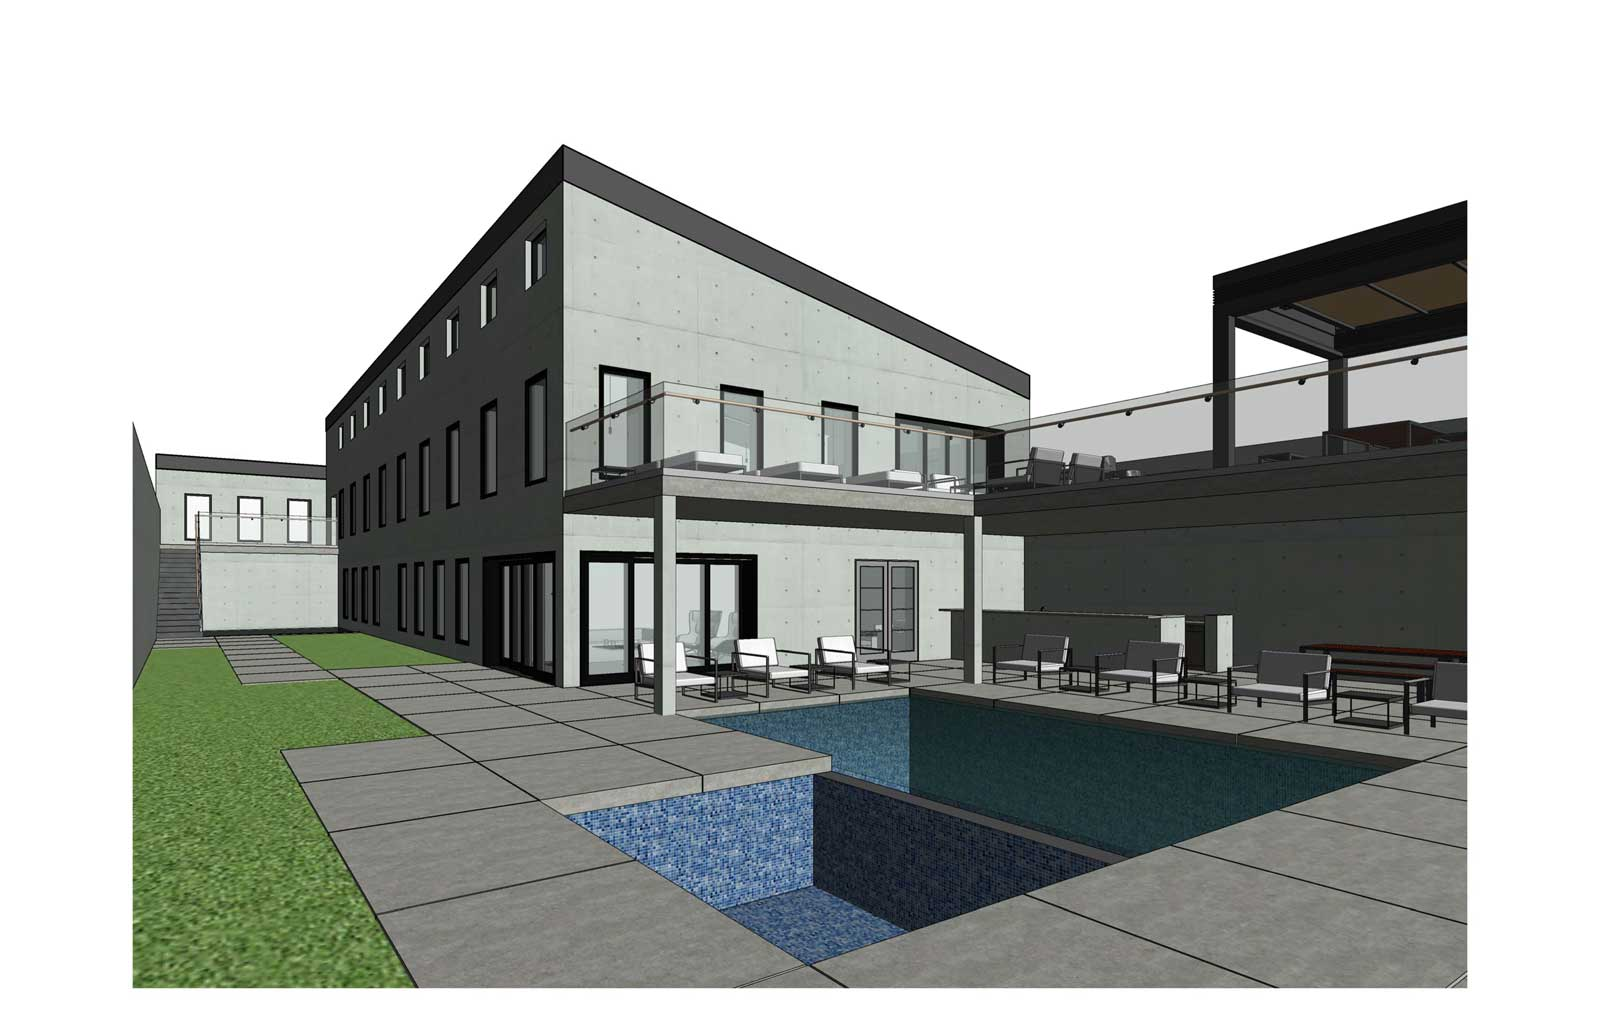 17x30 - Single Family High End Residence - Courtyard View